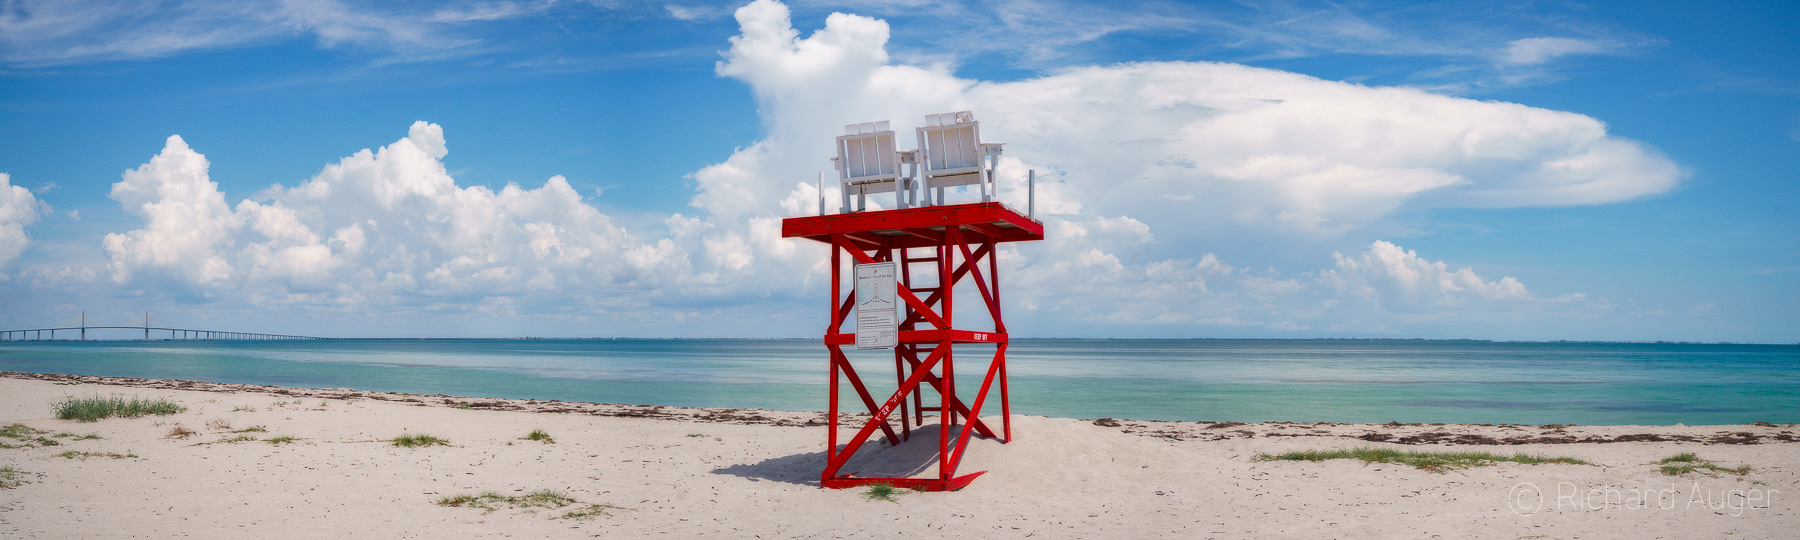 Fort De Soto Park, Florida, Lifeguard, Skyway Bridge, Pinellas County, St Petersburg, Beach, Sand Dunes, Ocean, Blue, Water, Photograph, Photographer, Photo, Landscape, Richard Auger